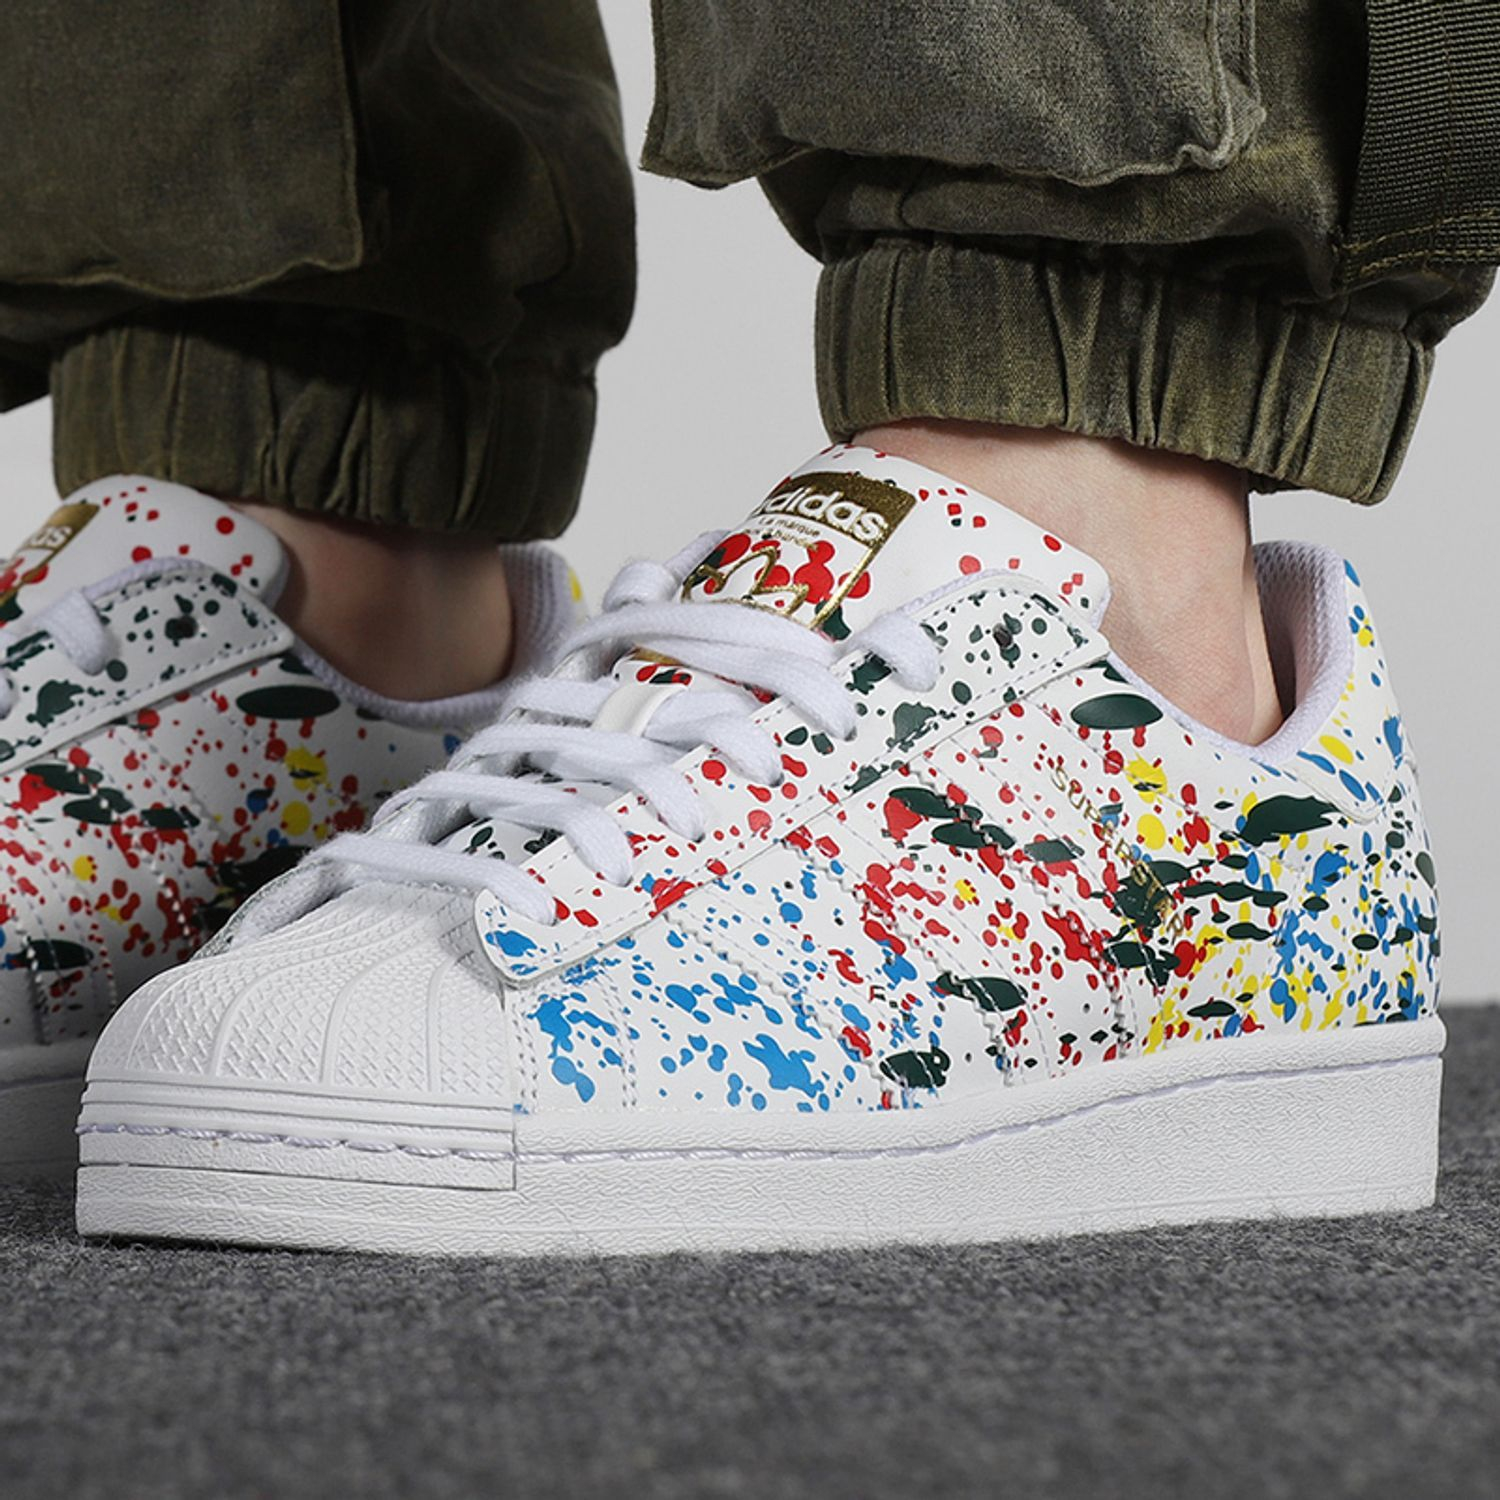 Image of Adidas SUPERSTAR PAINT SPLATTER Sneakers Shoes